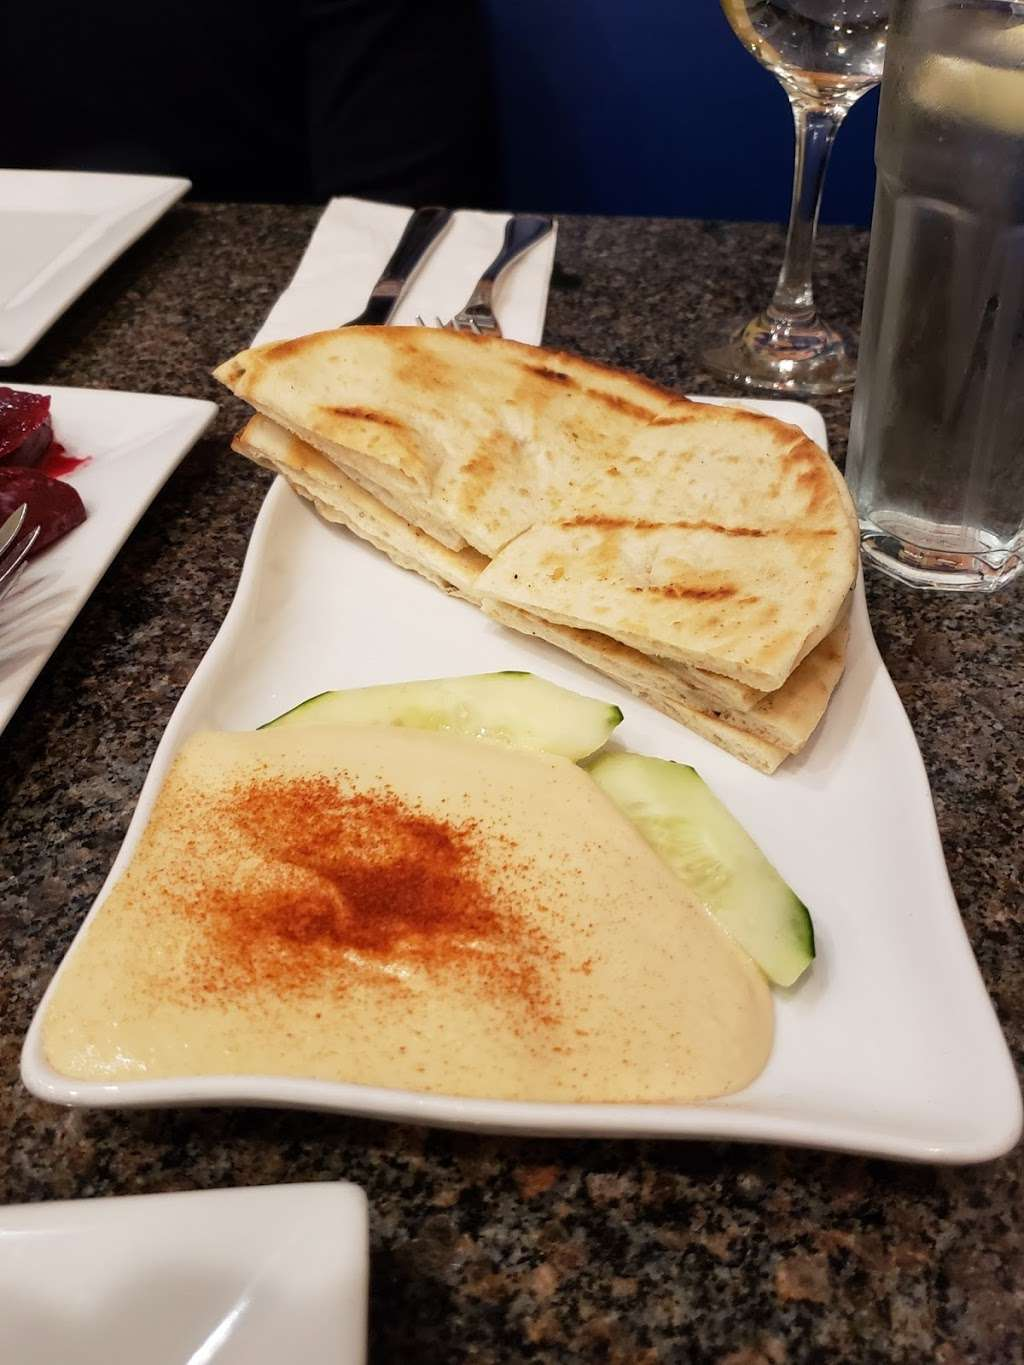 Its Greek To Me - restaurant  | Photo 8 of 10 | Address: 352 Anderson Ave B, Cliffside Park, NJ 07010, USA | Phone: (201) 945-5447